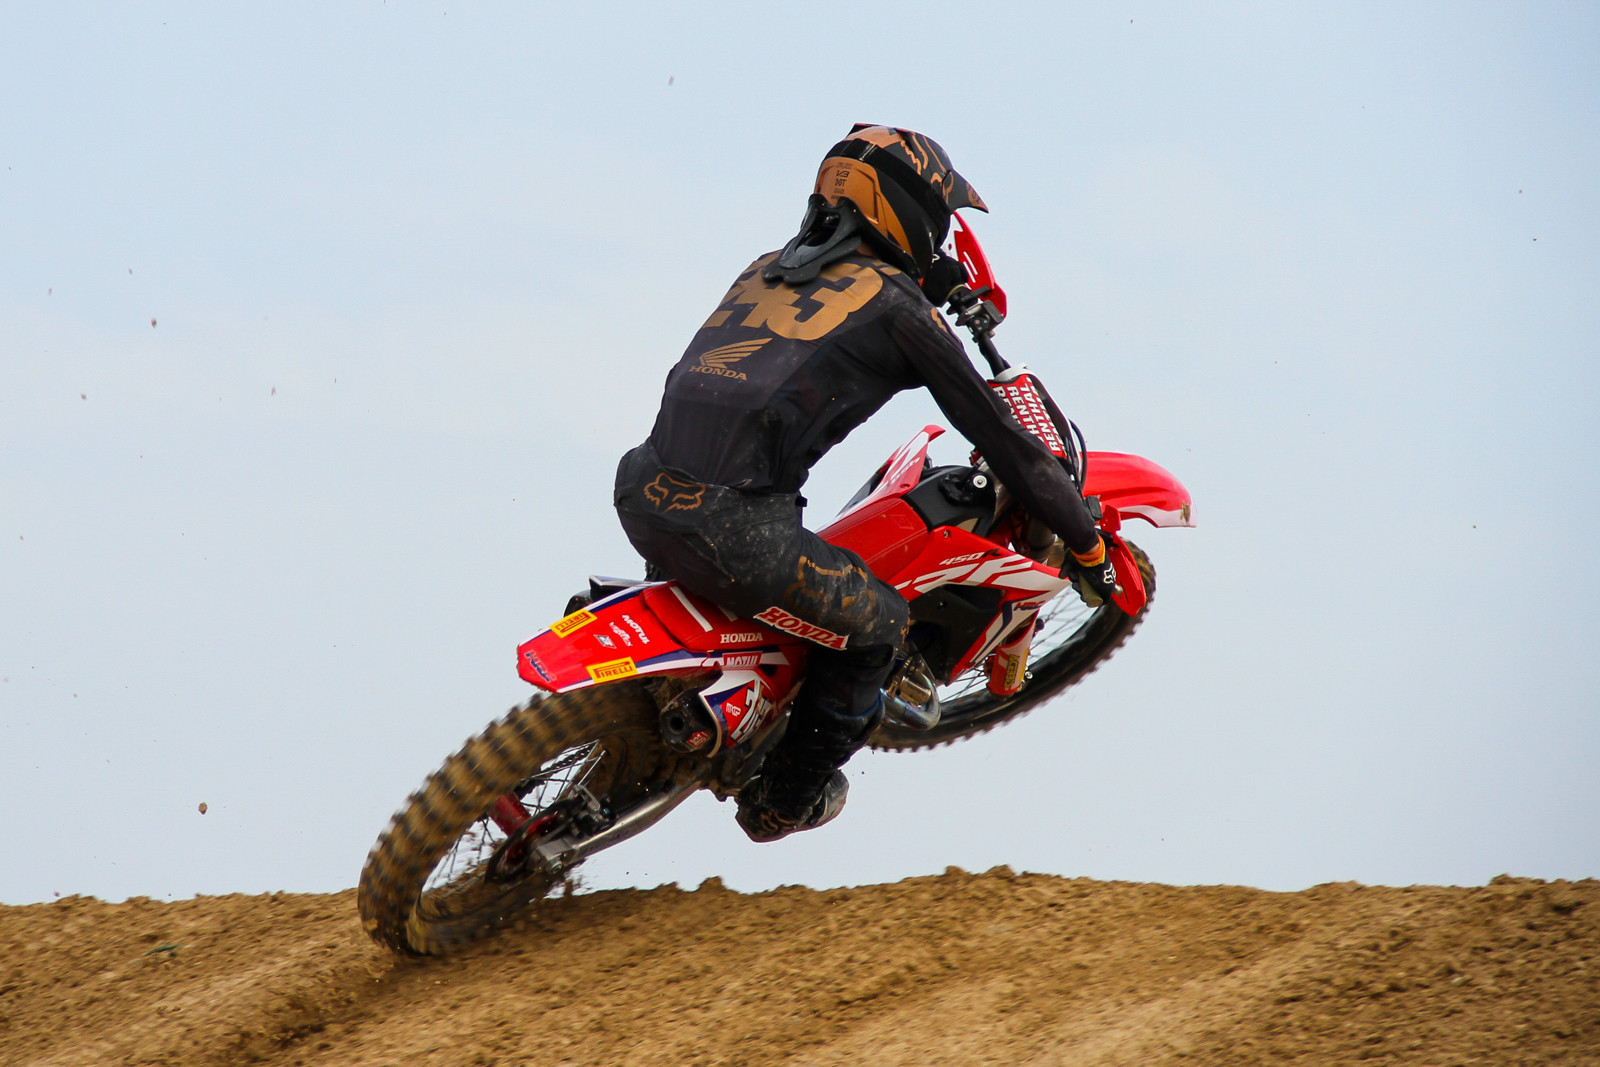 Injury Report: Tim Gajser